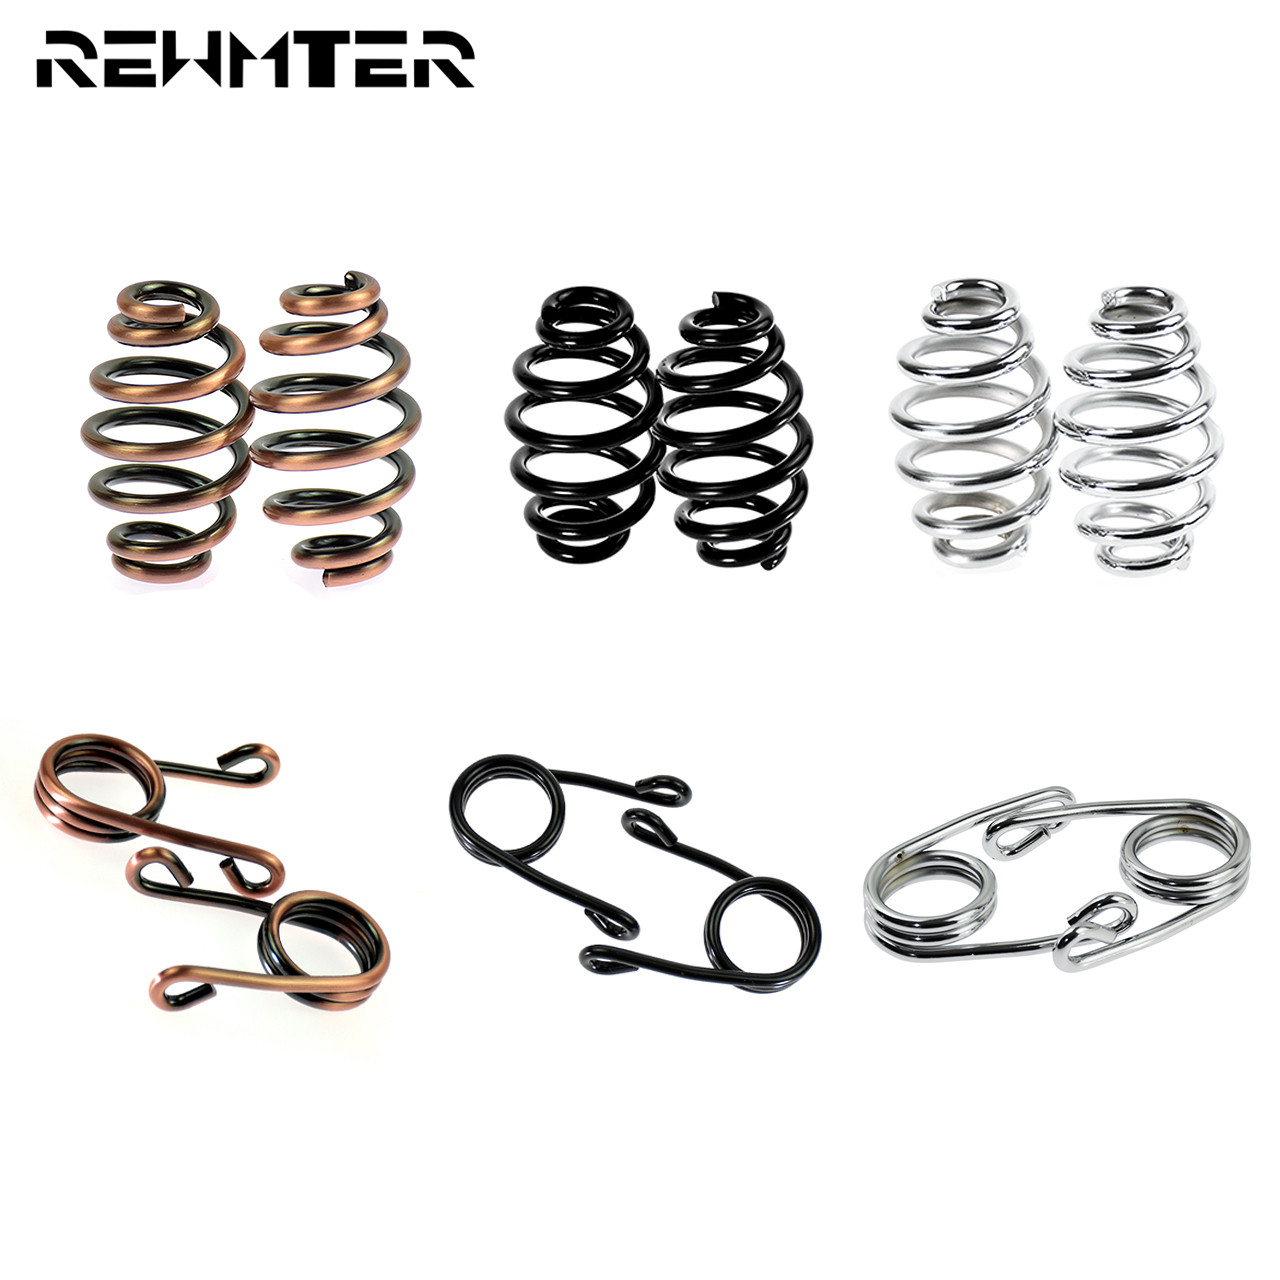 Motorcycle Solo Seat Springs Mounting Saddle Seat Spring For Harley Sportster Softail XL 883 1200 Dyna Fatboy Bobber